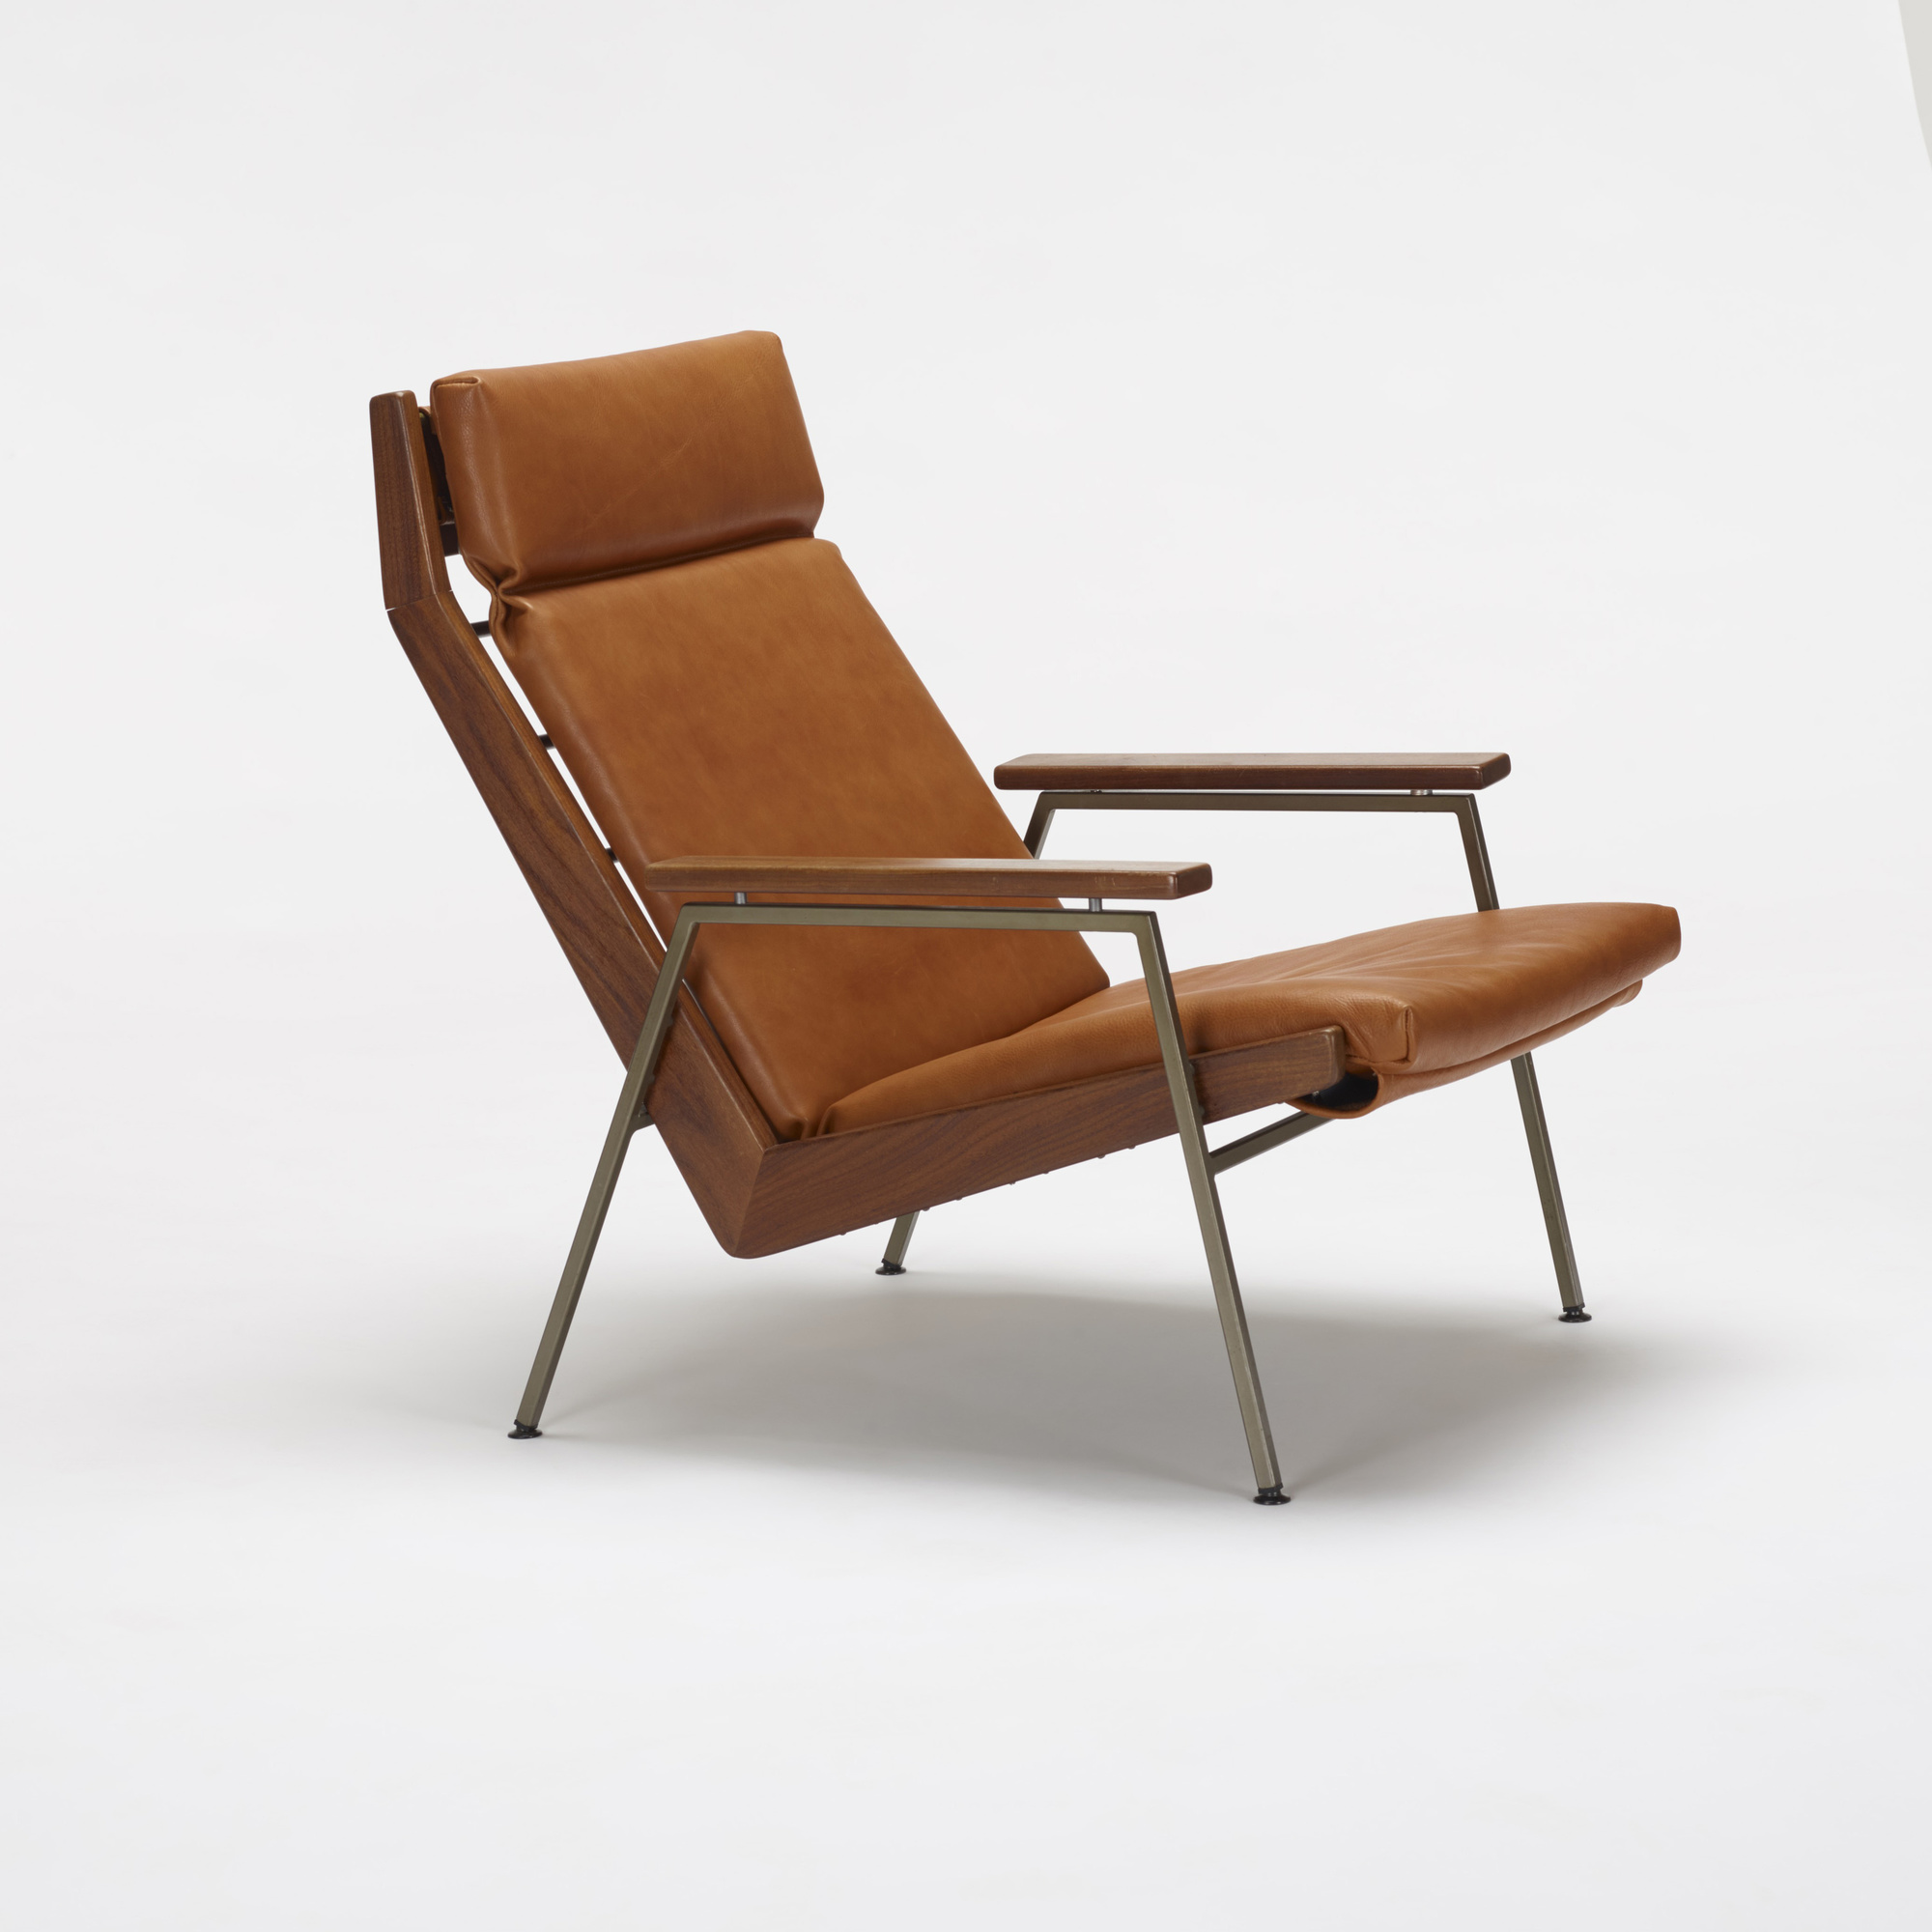 Admirable 315 Rob Parry Lotus Lounge Chairs Pair Art Design 19 Pdpeps Interior Chair Design Pdpepsorg